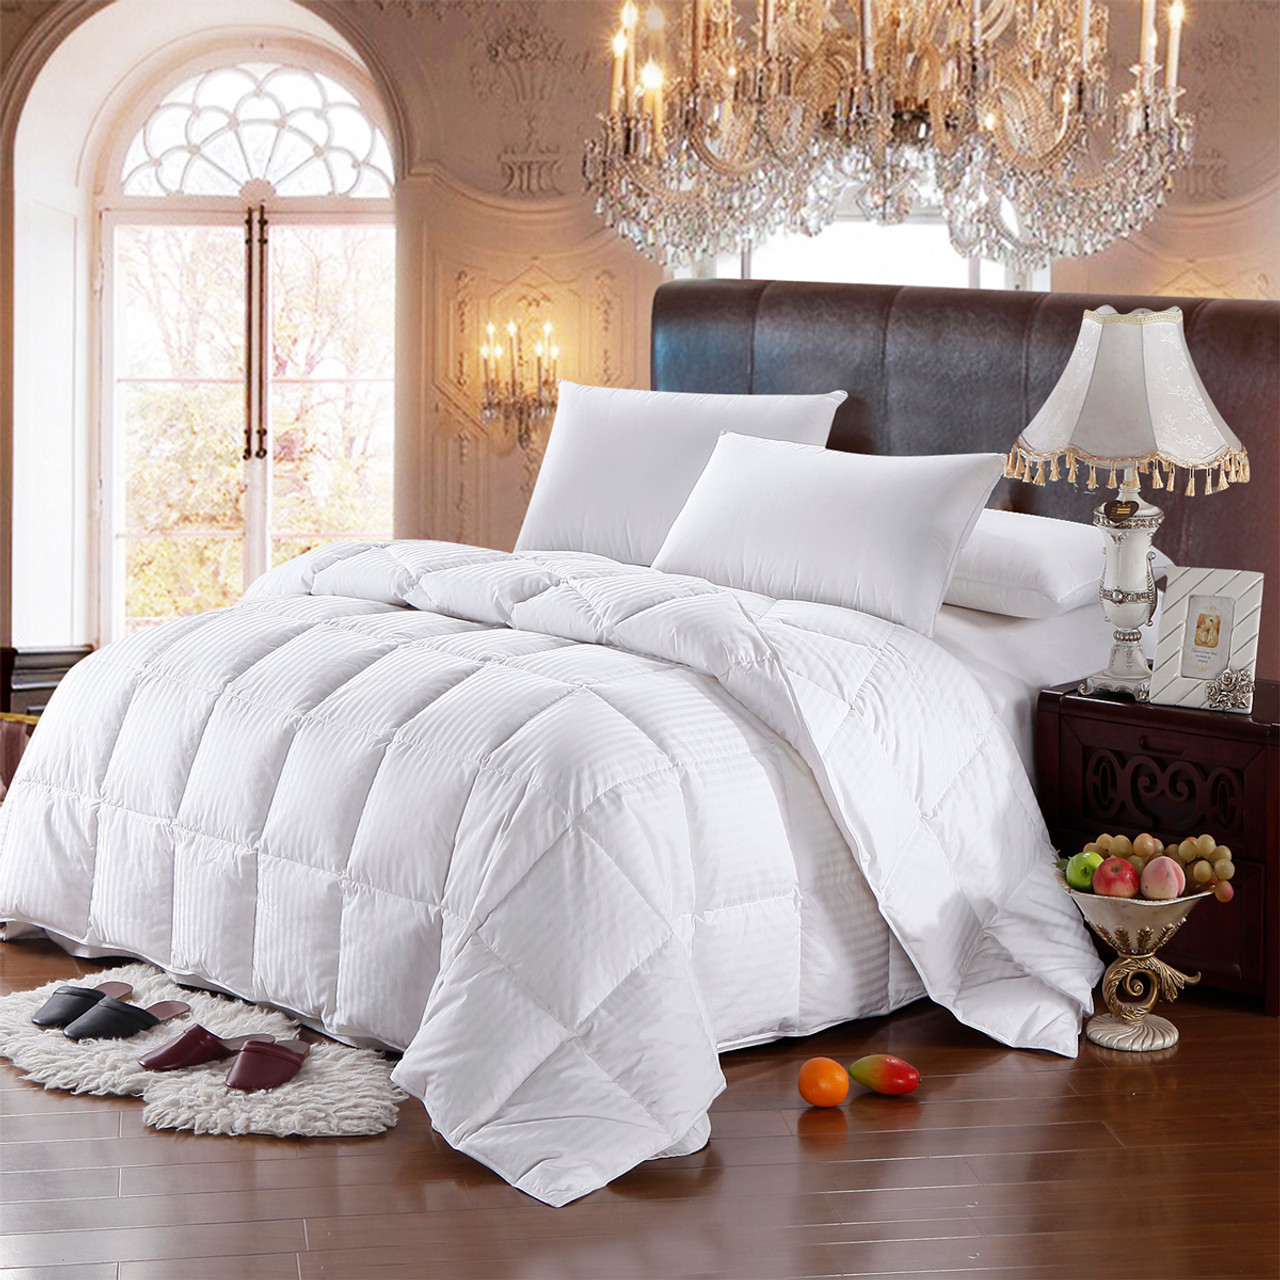 goose sale sets size pattern queen king org design comforter feher feather